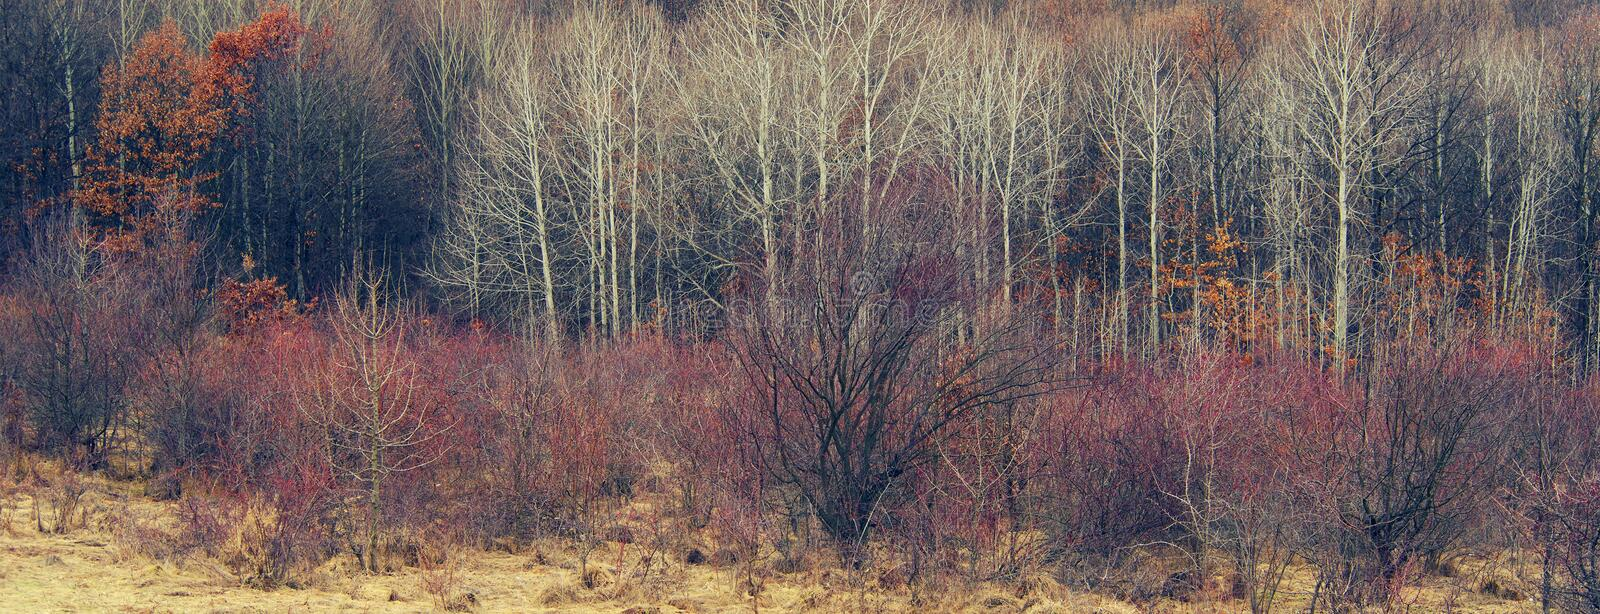 Early spring landscape in National Park Retezat. royalty free stock photography